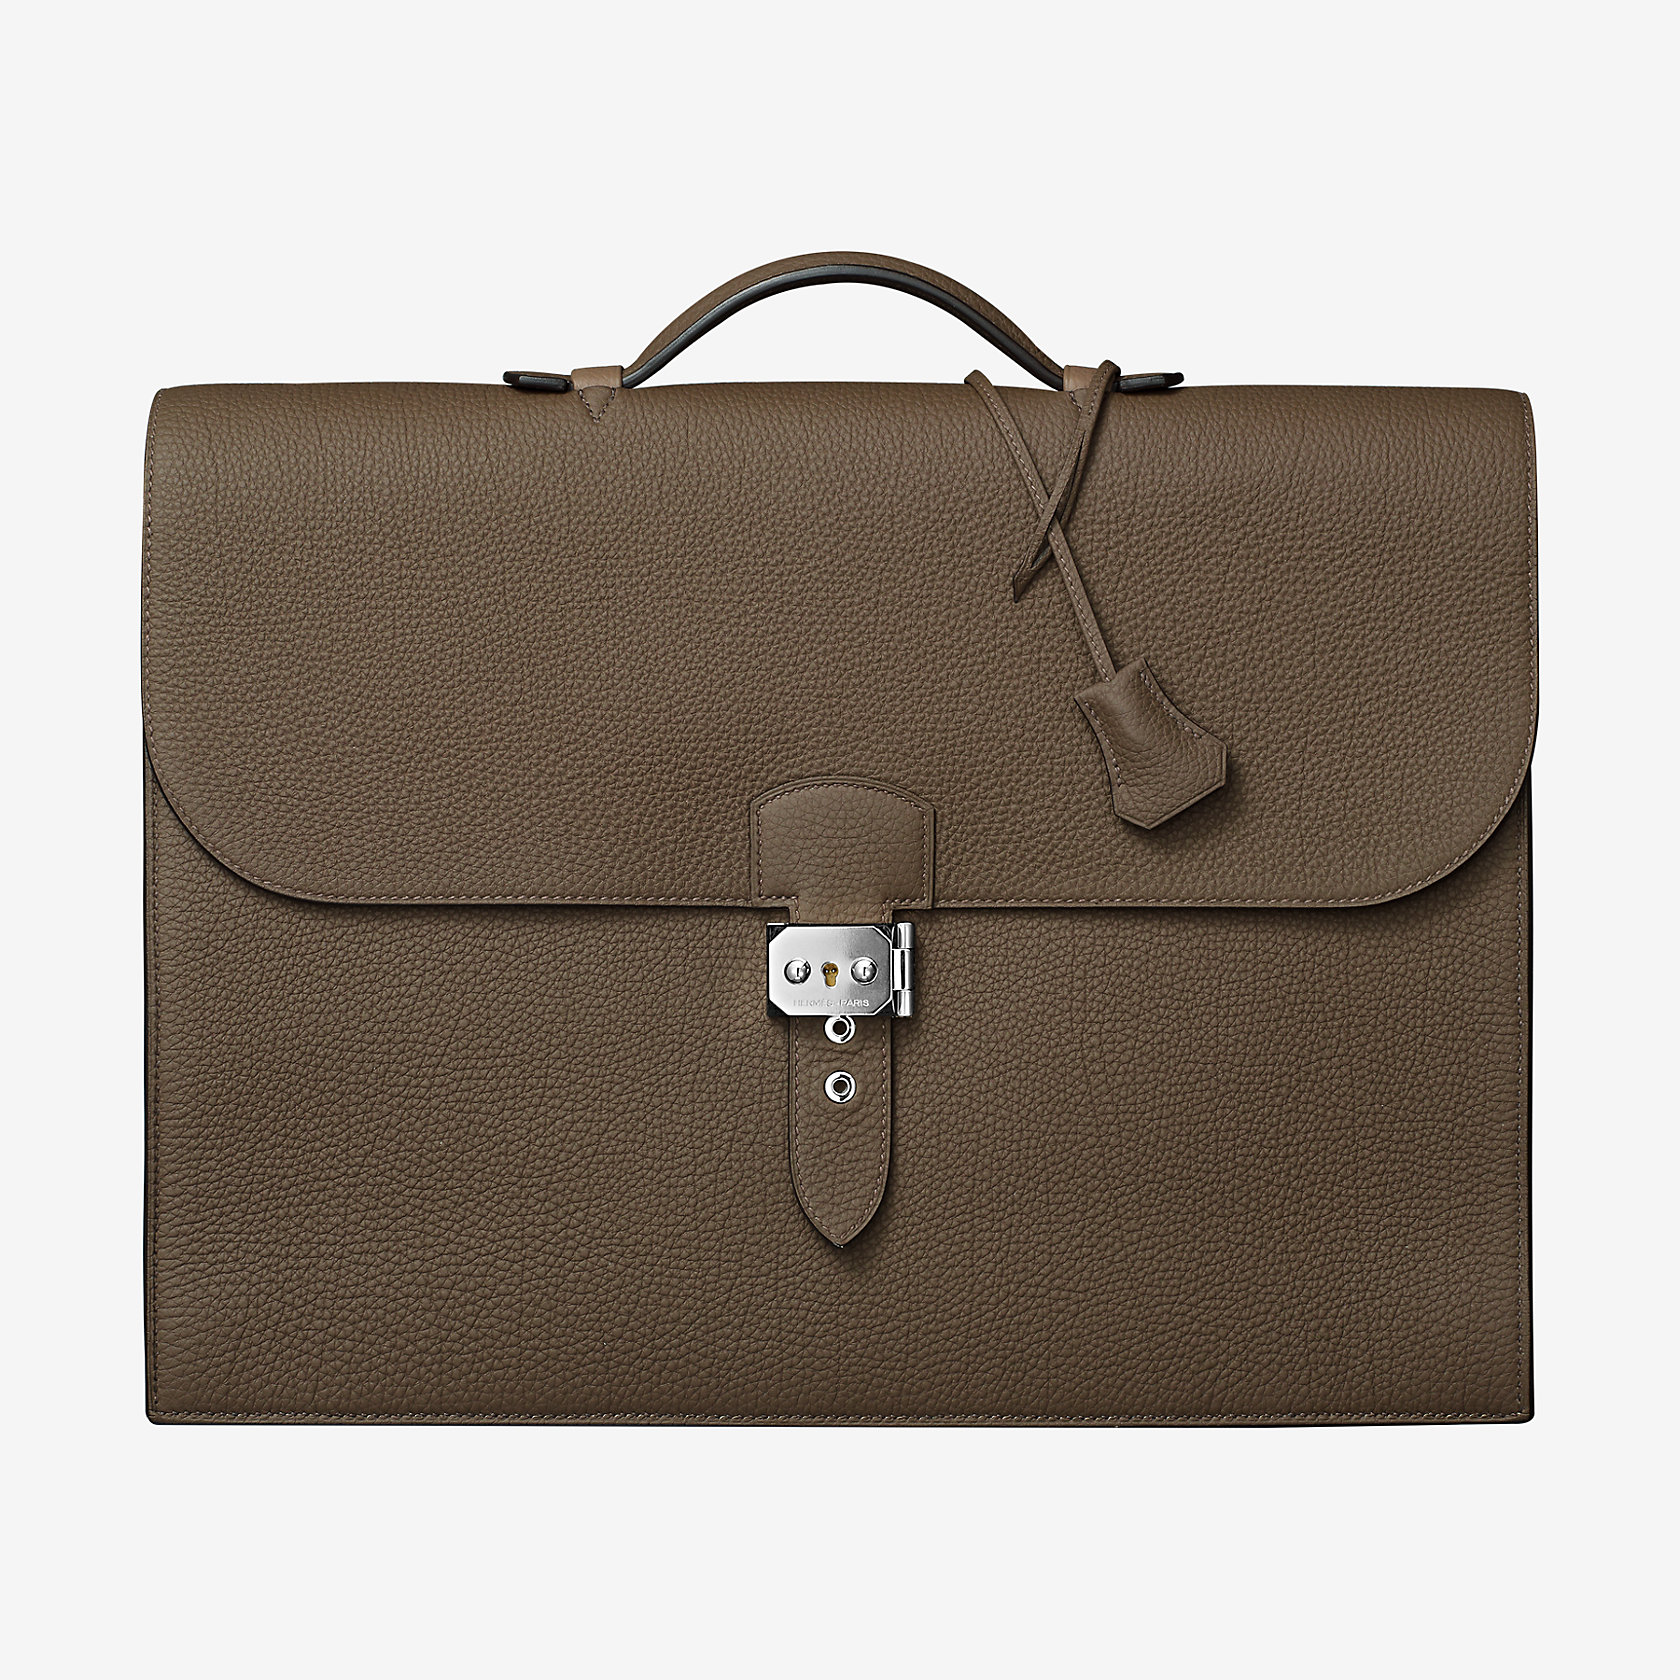 uk hermes kelly depeche briefcase replica 9aa27 2613a  real sac a depeches 38  briefcase hermès c1d58 44eb8 d67f72cb3620d